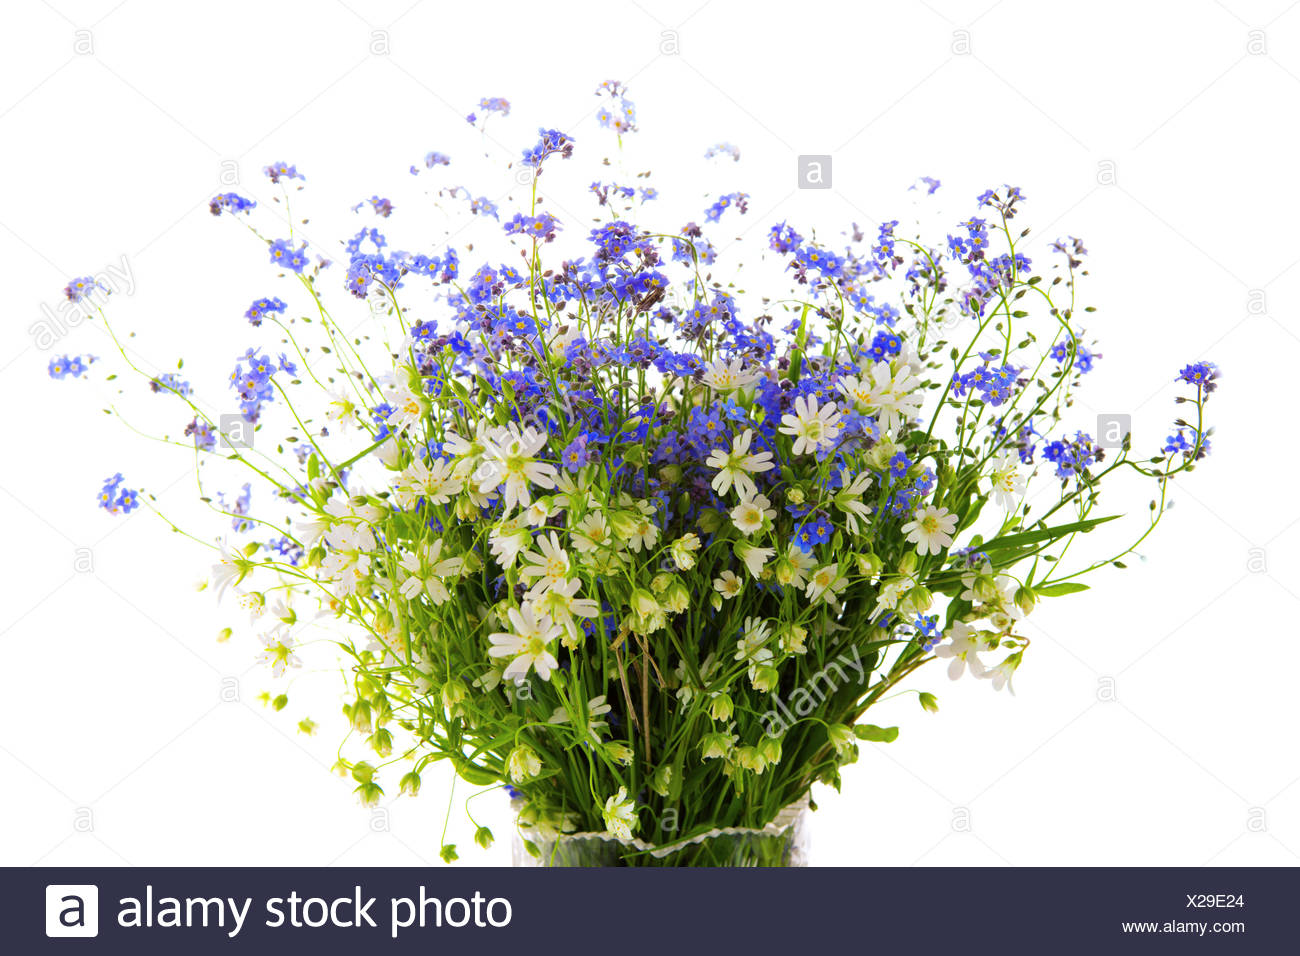 Spring wild flowers bouquet stock photo 276803804 alamy spring wild flowers bouquet izmirmasajfo